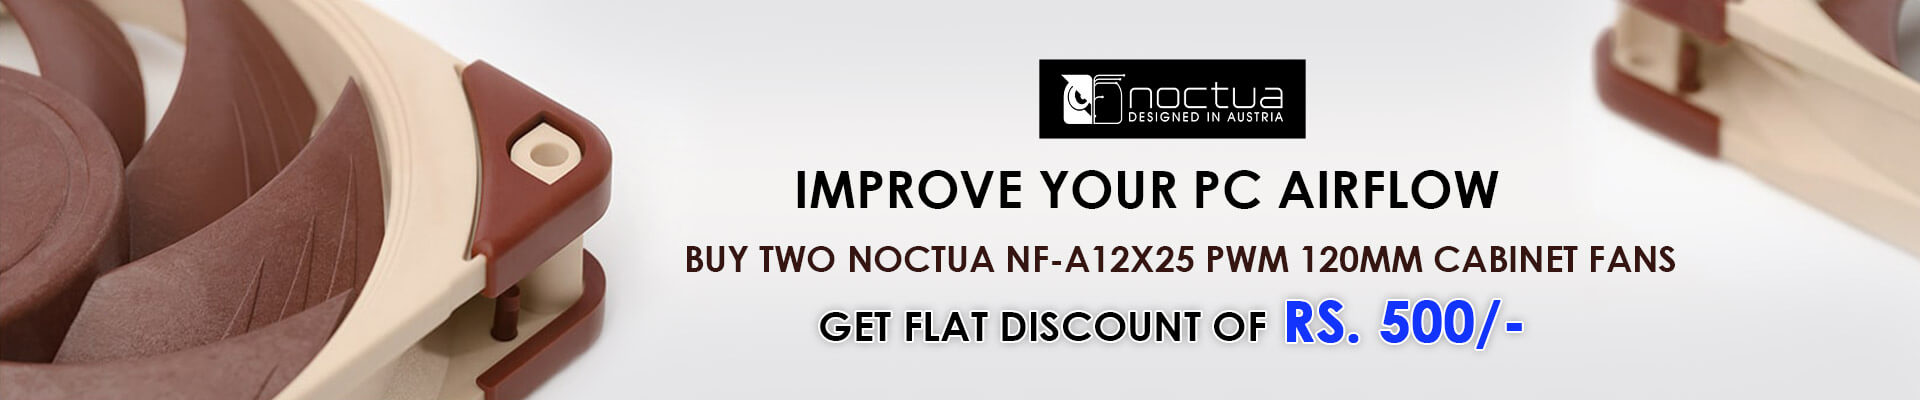 Buy Two Noctua NF-A12x25 PWM Cabinet Fan (Single Pack)Get Rs. 500/- Discount